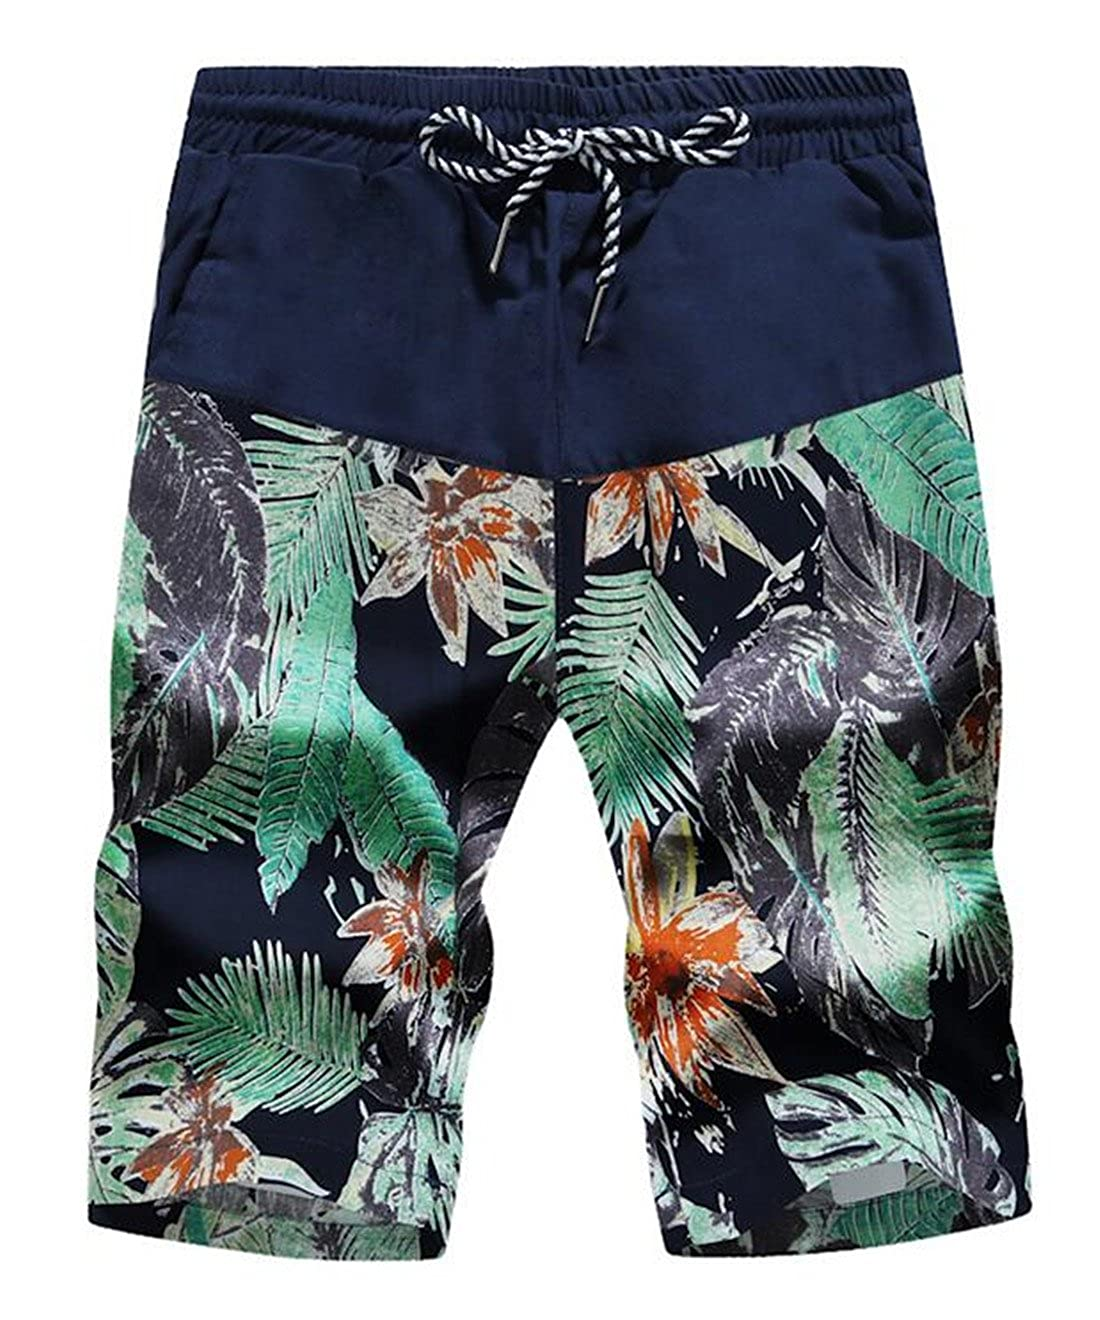 Nanquan Men NQ Mens Summer Drawstring Elastic Waist Floral Print Beach Shorts